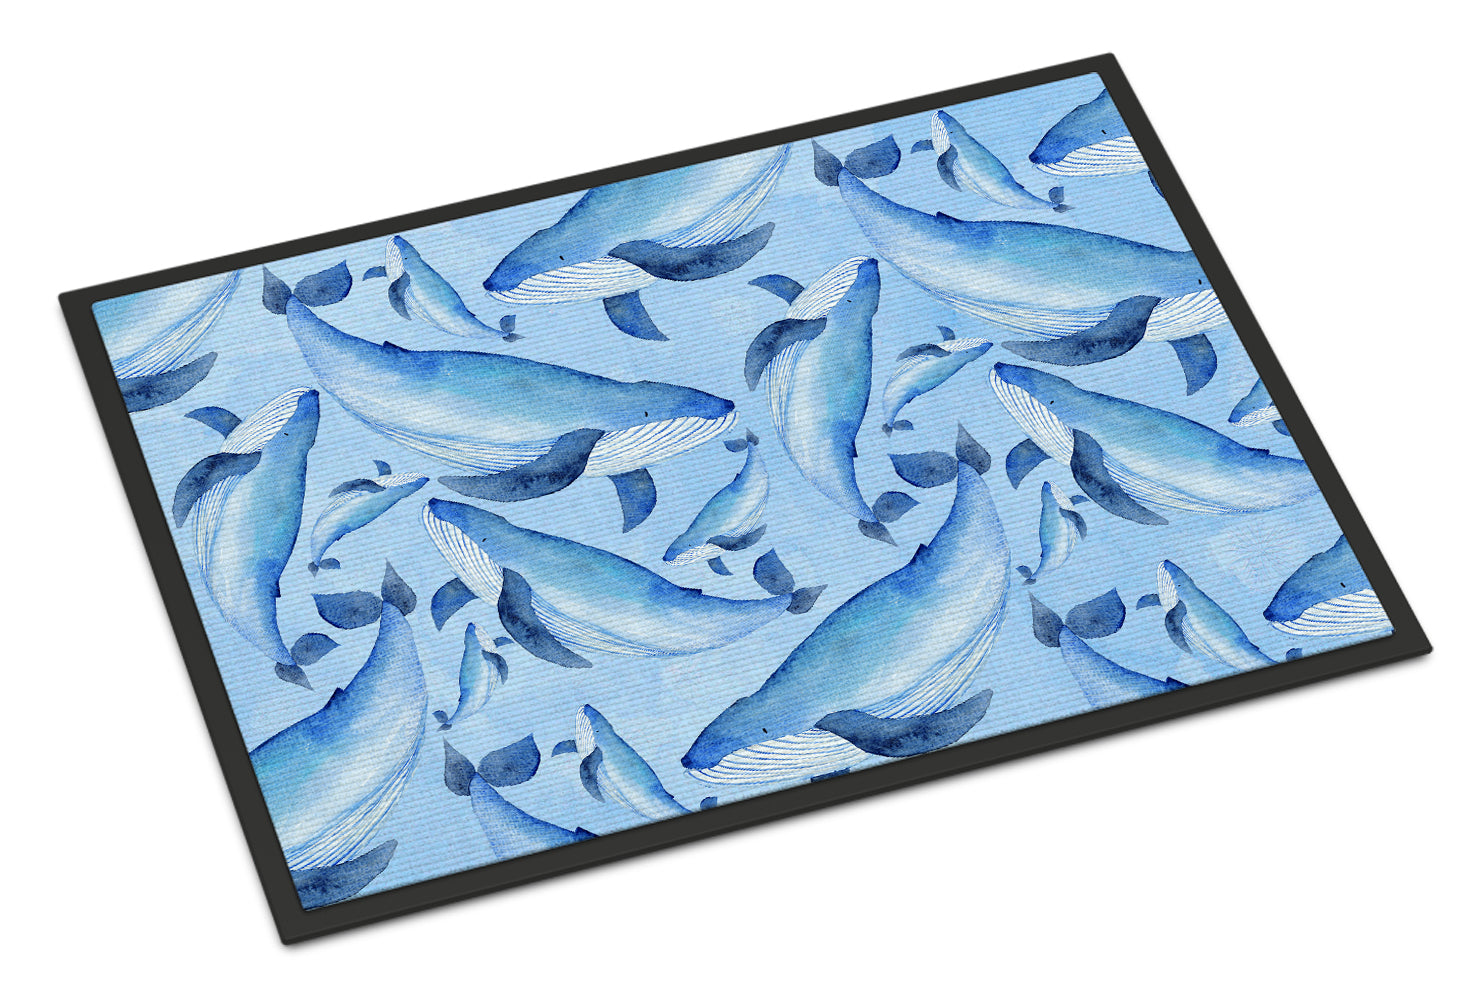 Watercolor Nautical Whales Indoor or Outdoor Mat 18x27 BB7575MAT by Caroline's Treasures